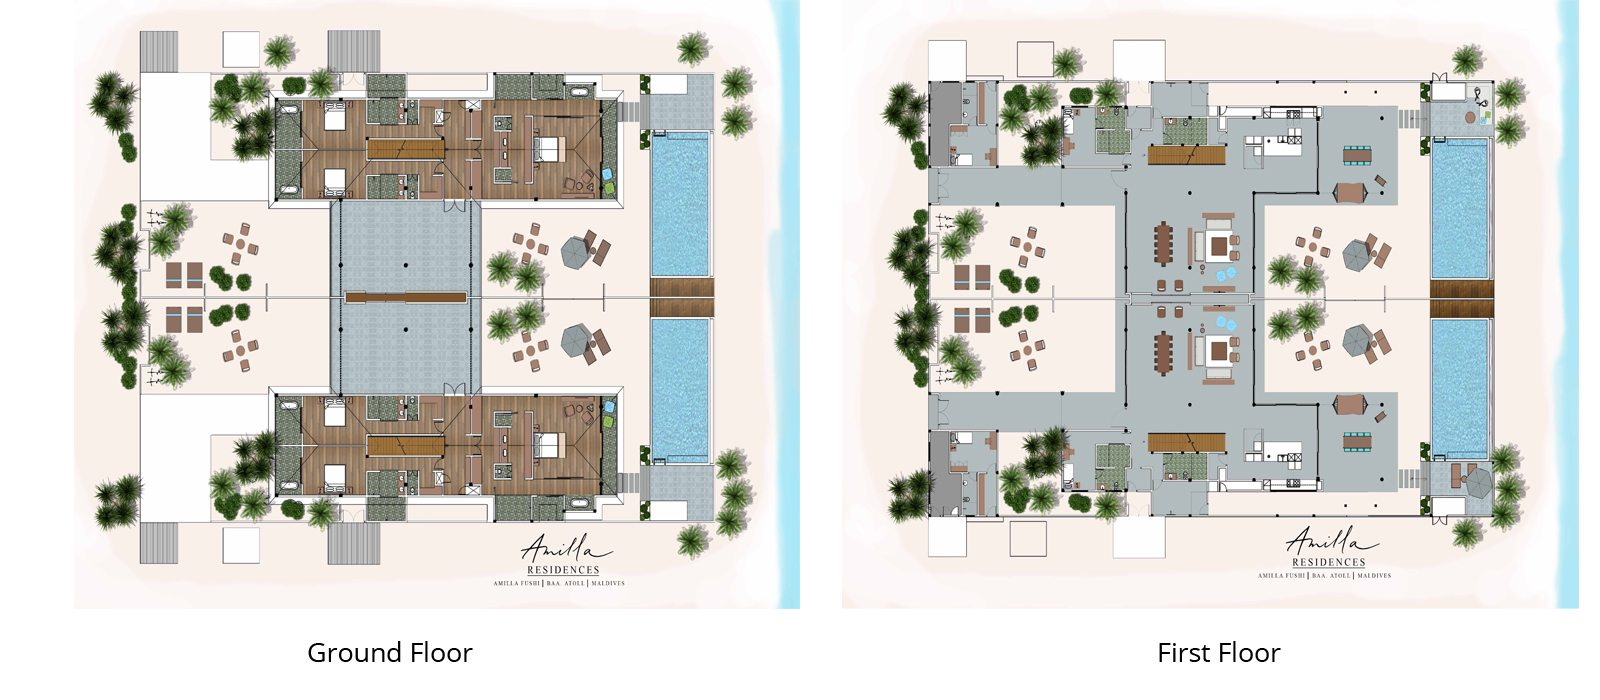 Amilla Great Beach Villa Residence Floorplan | Baa Atoll, Maldives